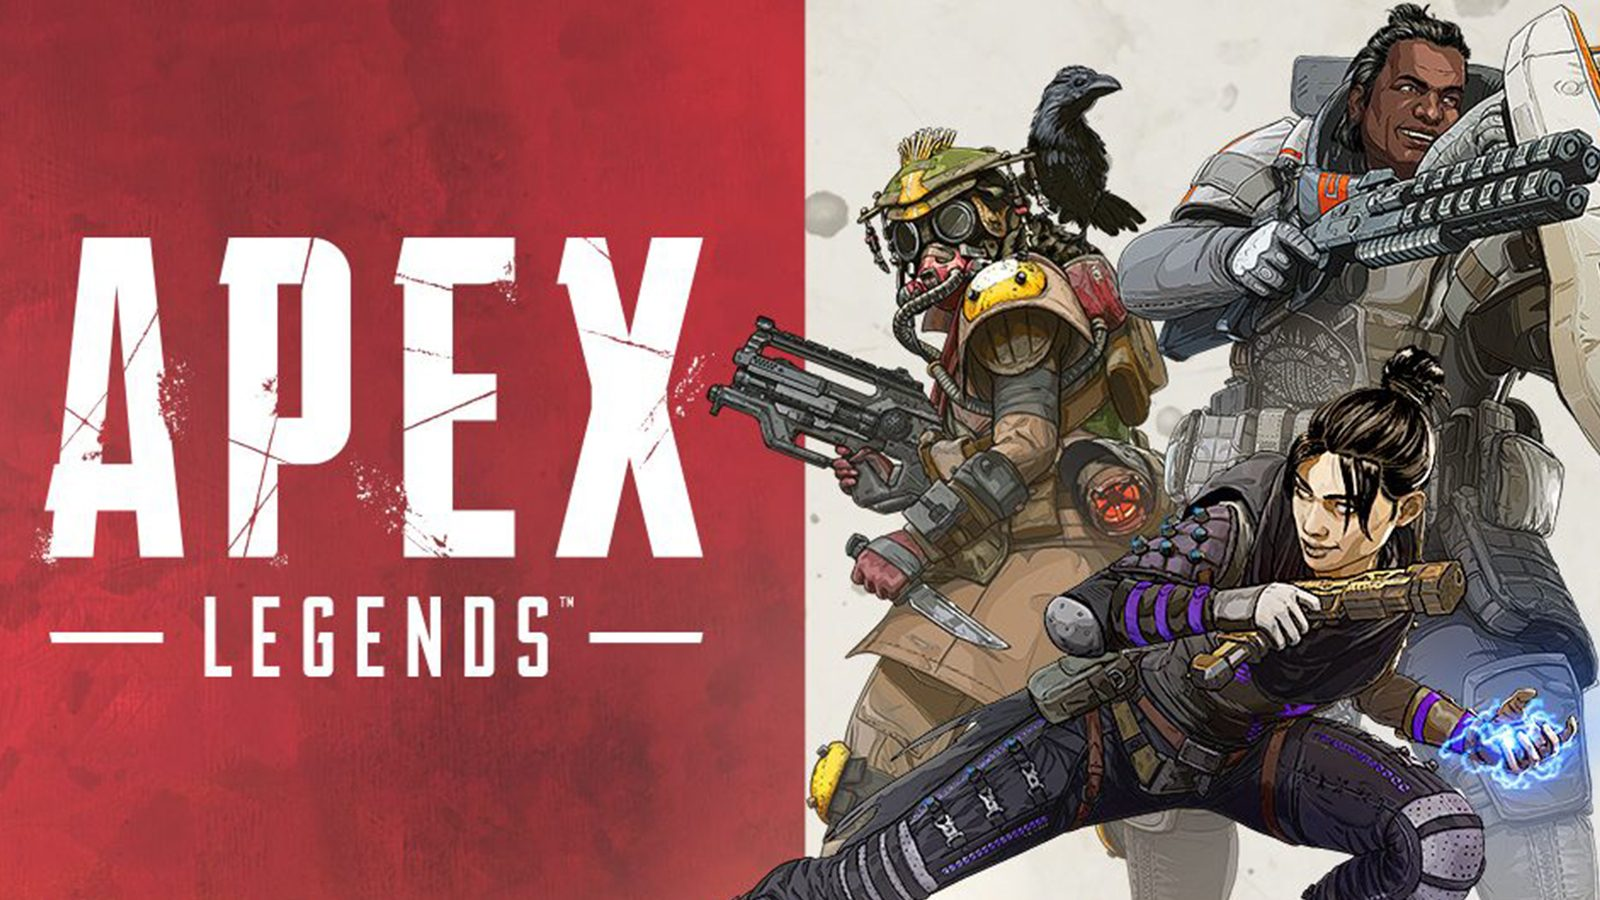 apex legends ot 20 urovnya [origin] + skidka 39 rur